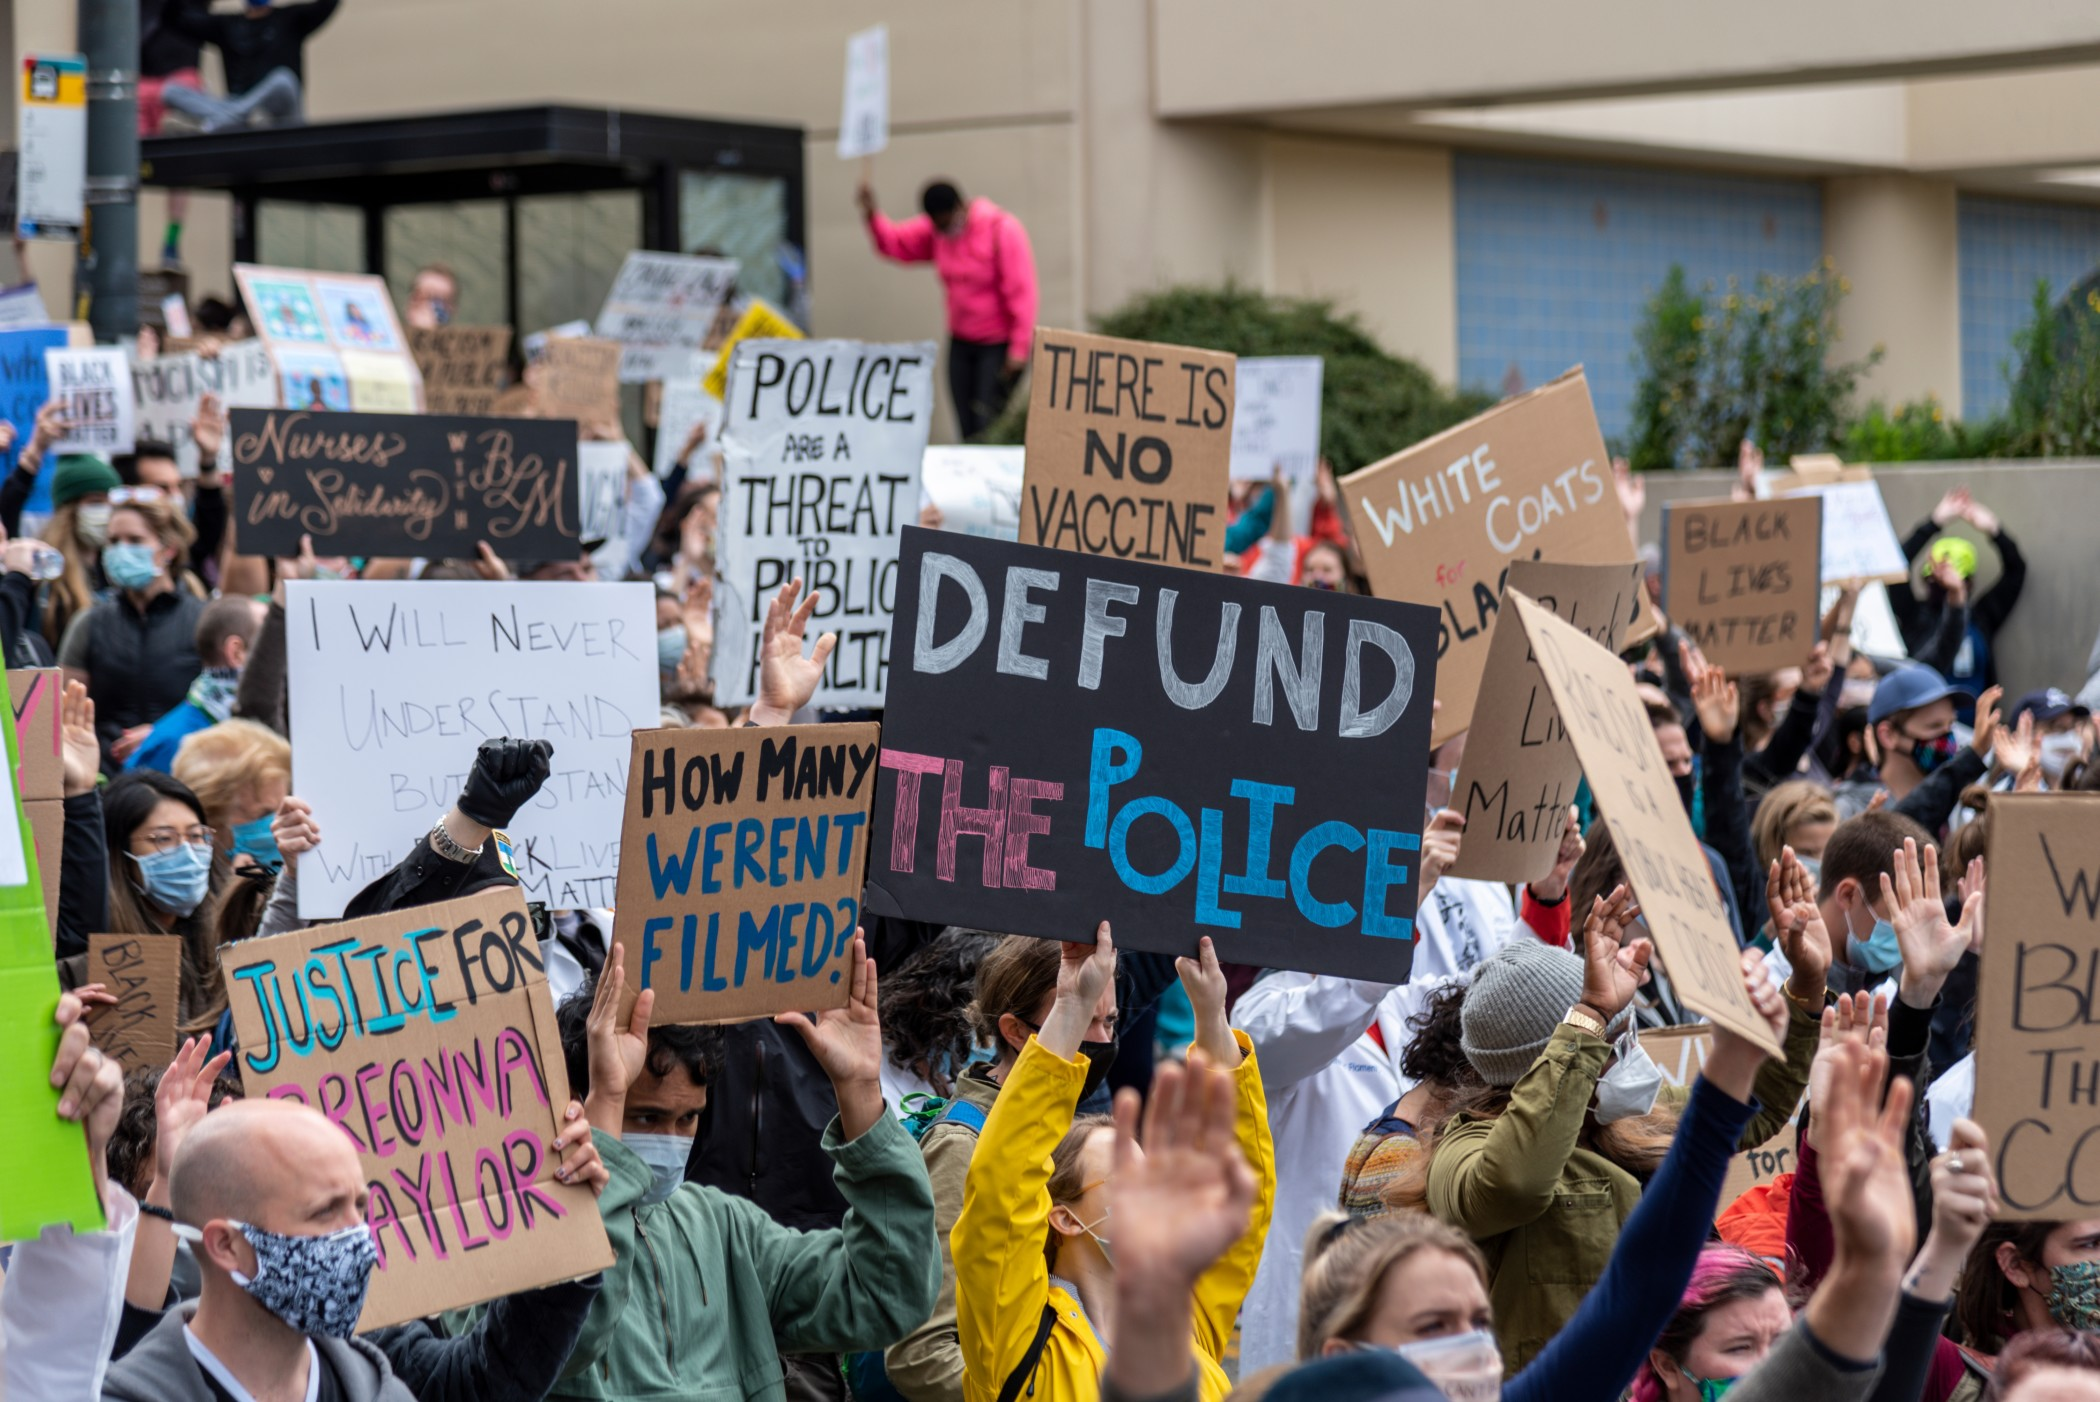 'Defund the police' is not a slogan. It's a demand